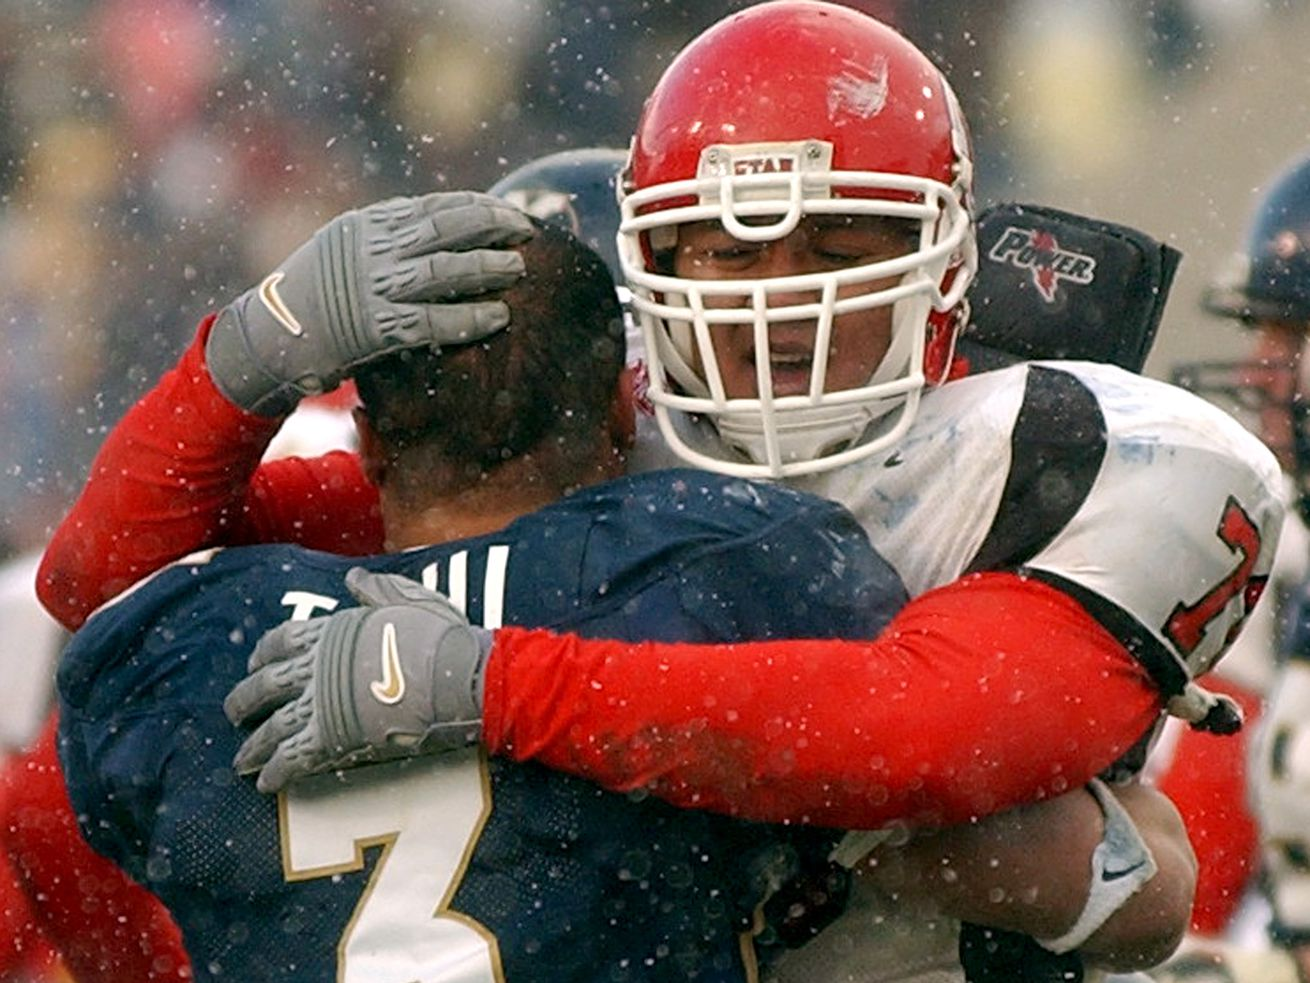 Utah's #78 Tavo Tupola hugs BYU's #3 Naufahu Tahi after the Utes defeated BYU 3-0 in Provo in 2003. The two programs would again be conference mates if a national writer gets his wish.